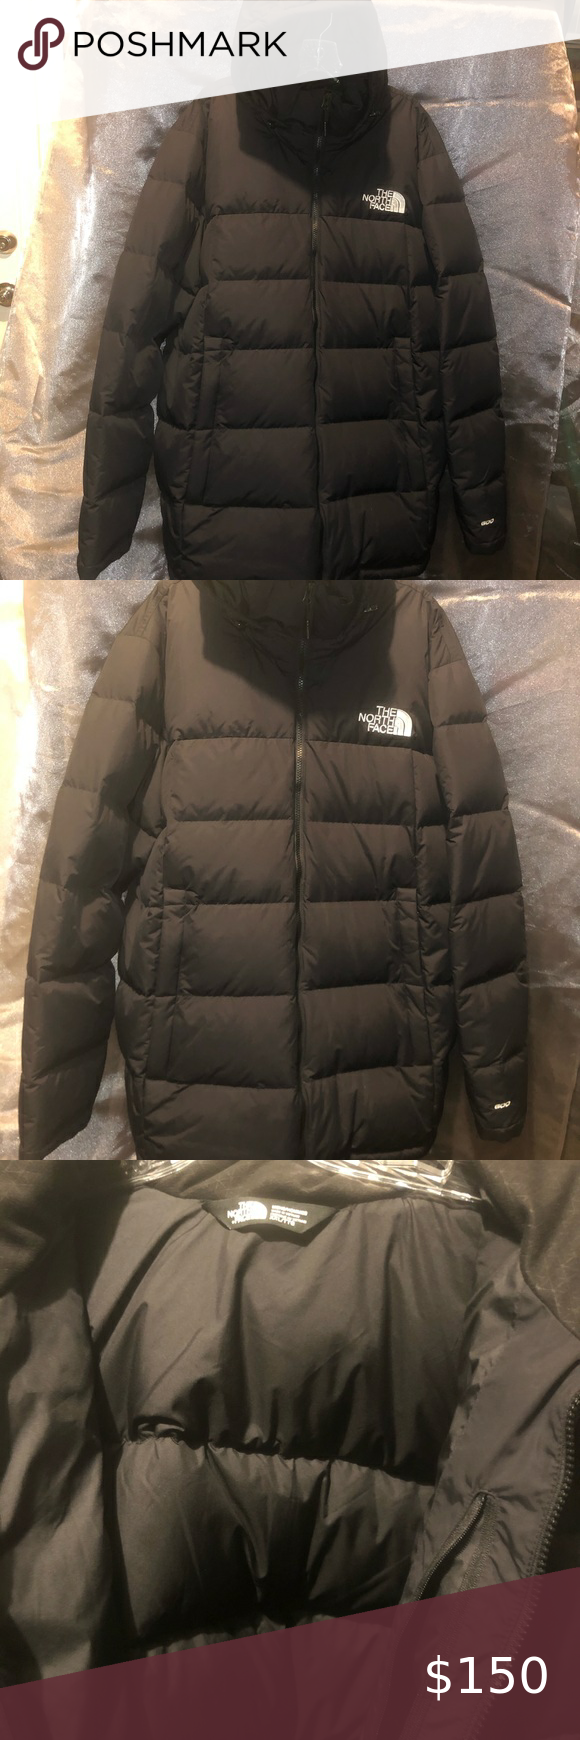 Men S North Face 600 Series Jacket The North Face Jackets North Face Jacket [ 1740 x 580 Pixel ]